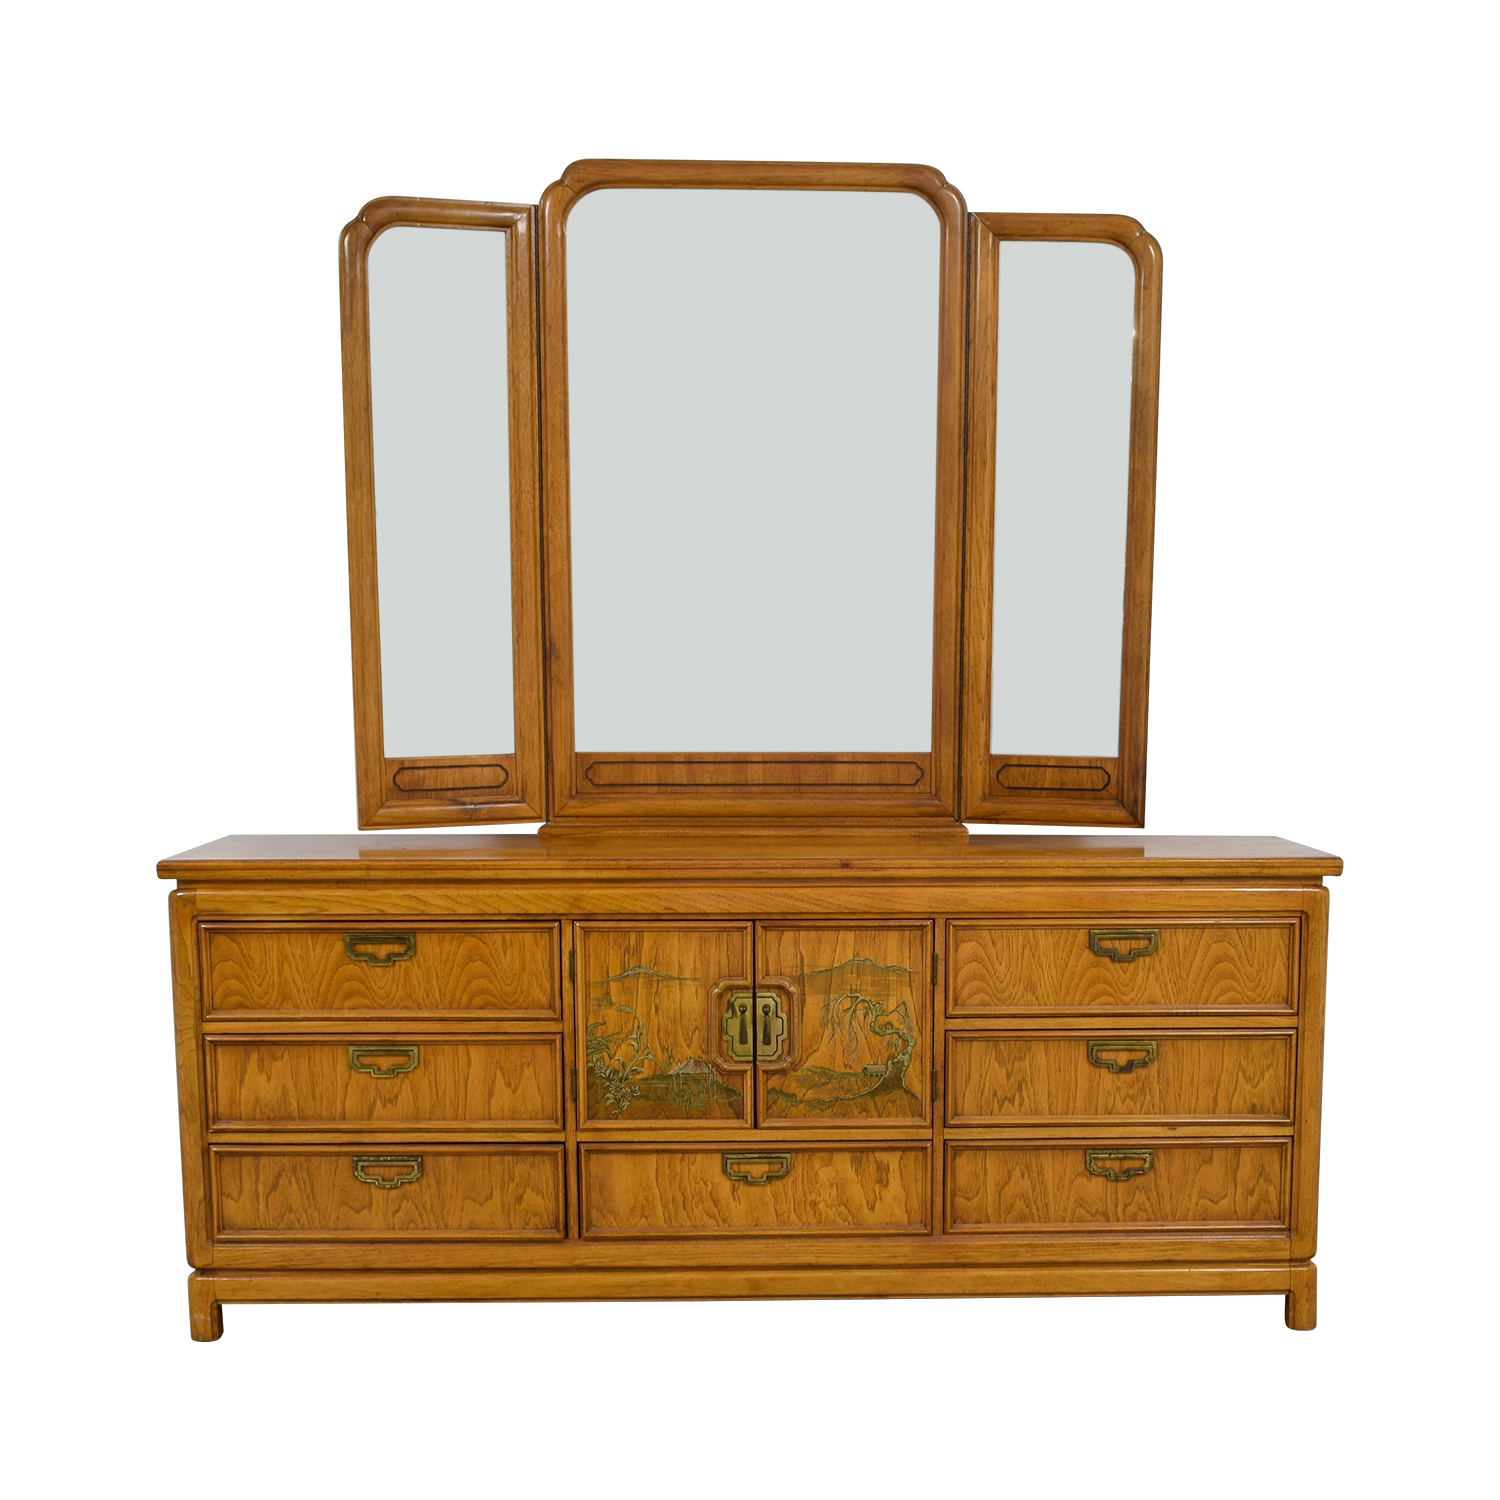 Thomasville Thomasville Nine-Drawer Dresser with Folding MIrror for sale